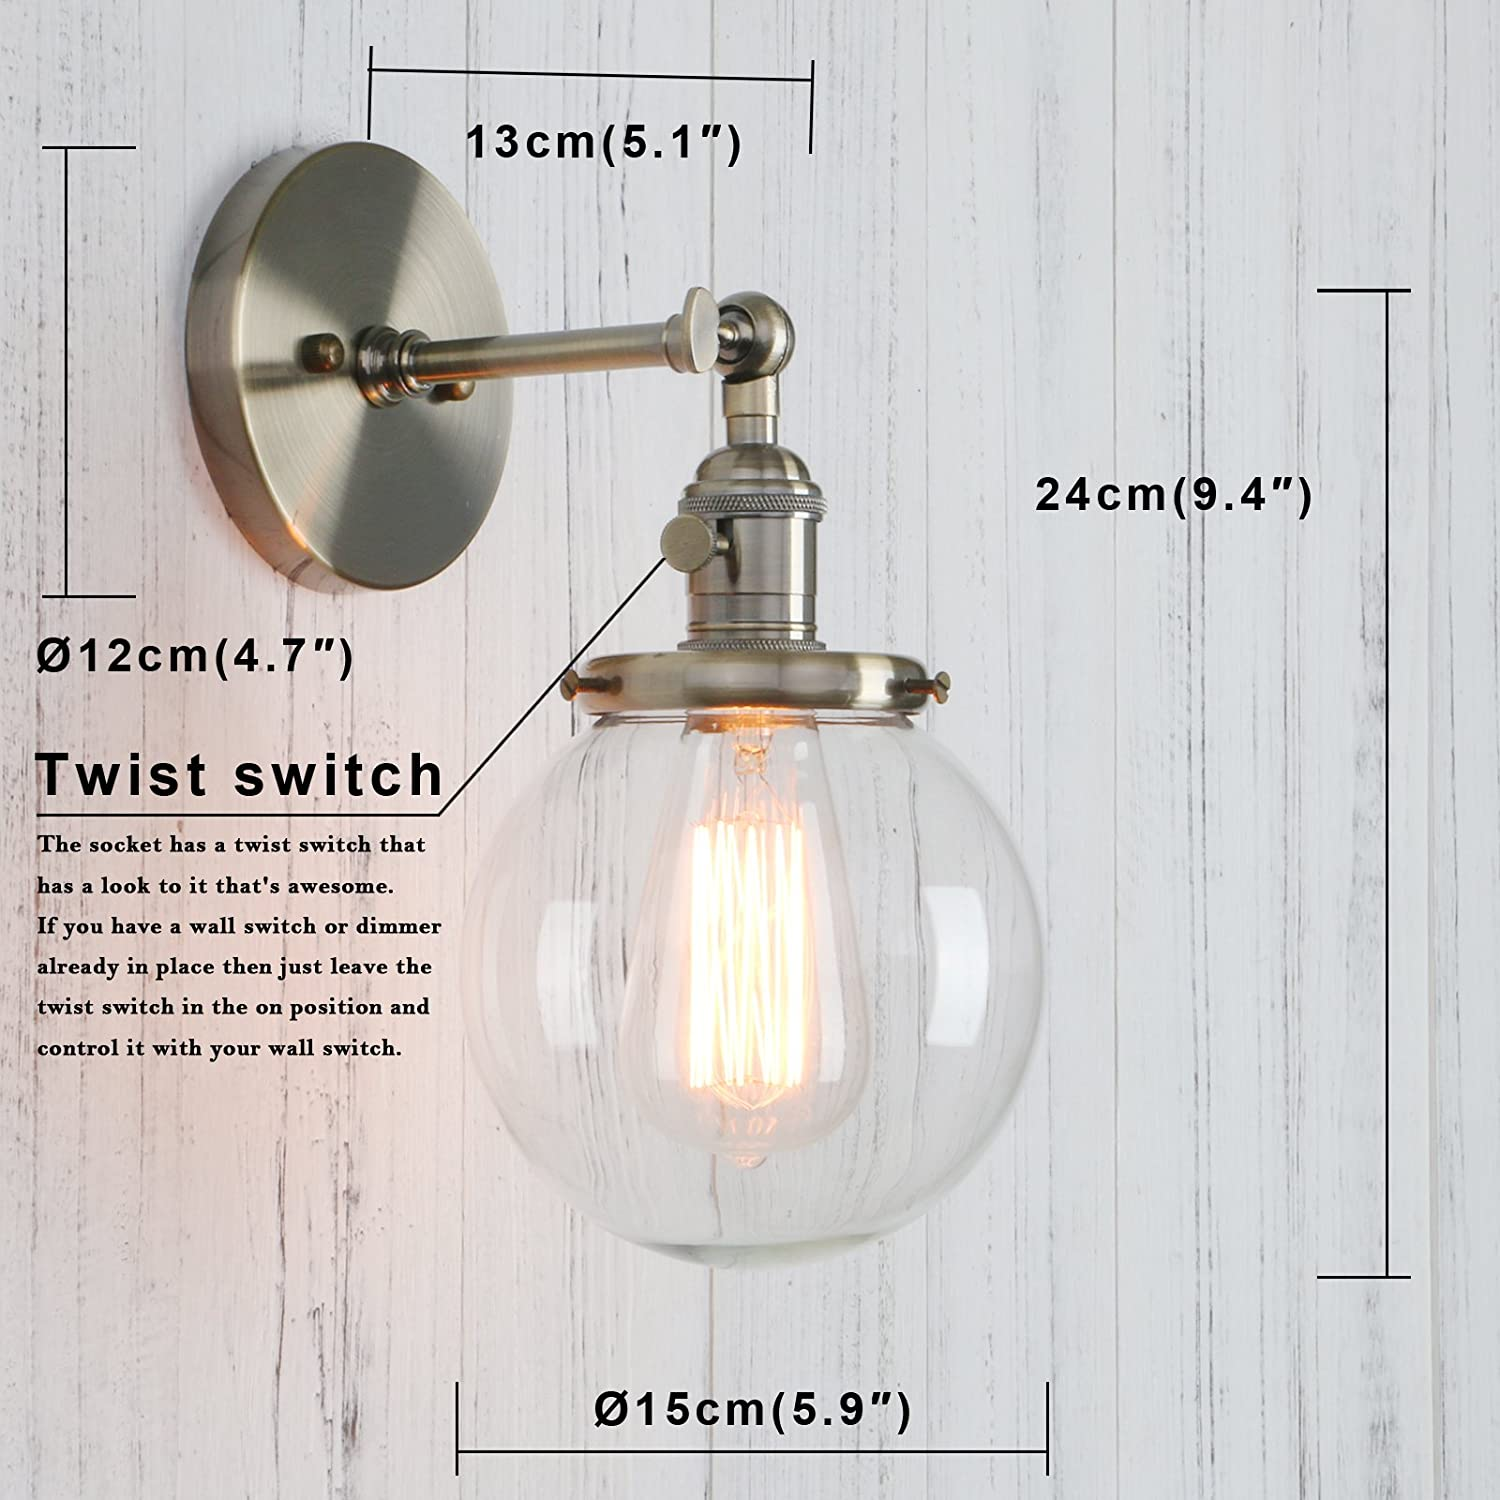 Adding A Wall Sconce Switch Wiring Diagrams For House Diagram Sconces Toyota 4 Wire Double Light Home